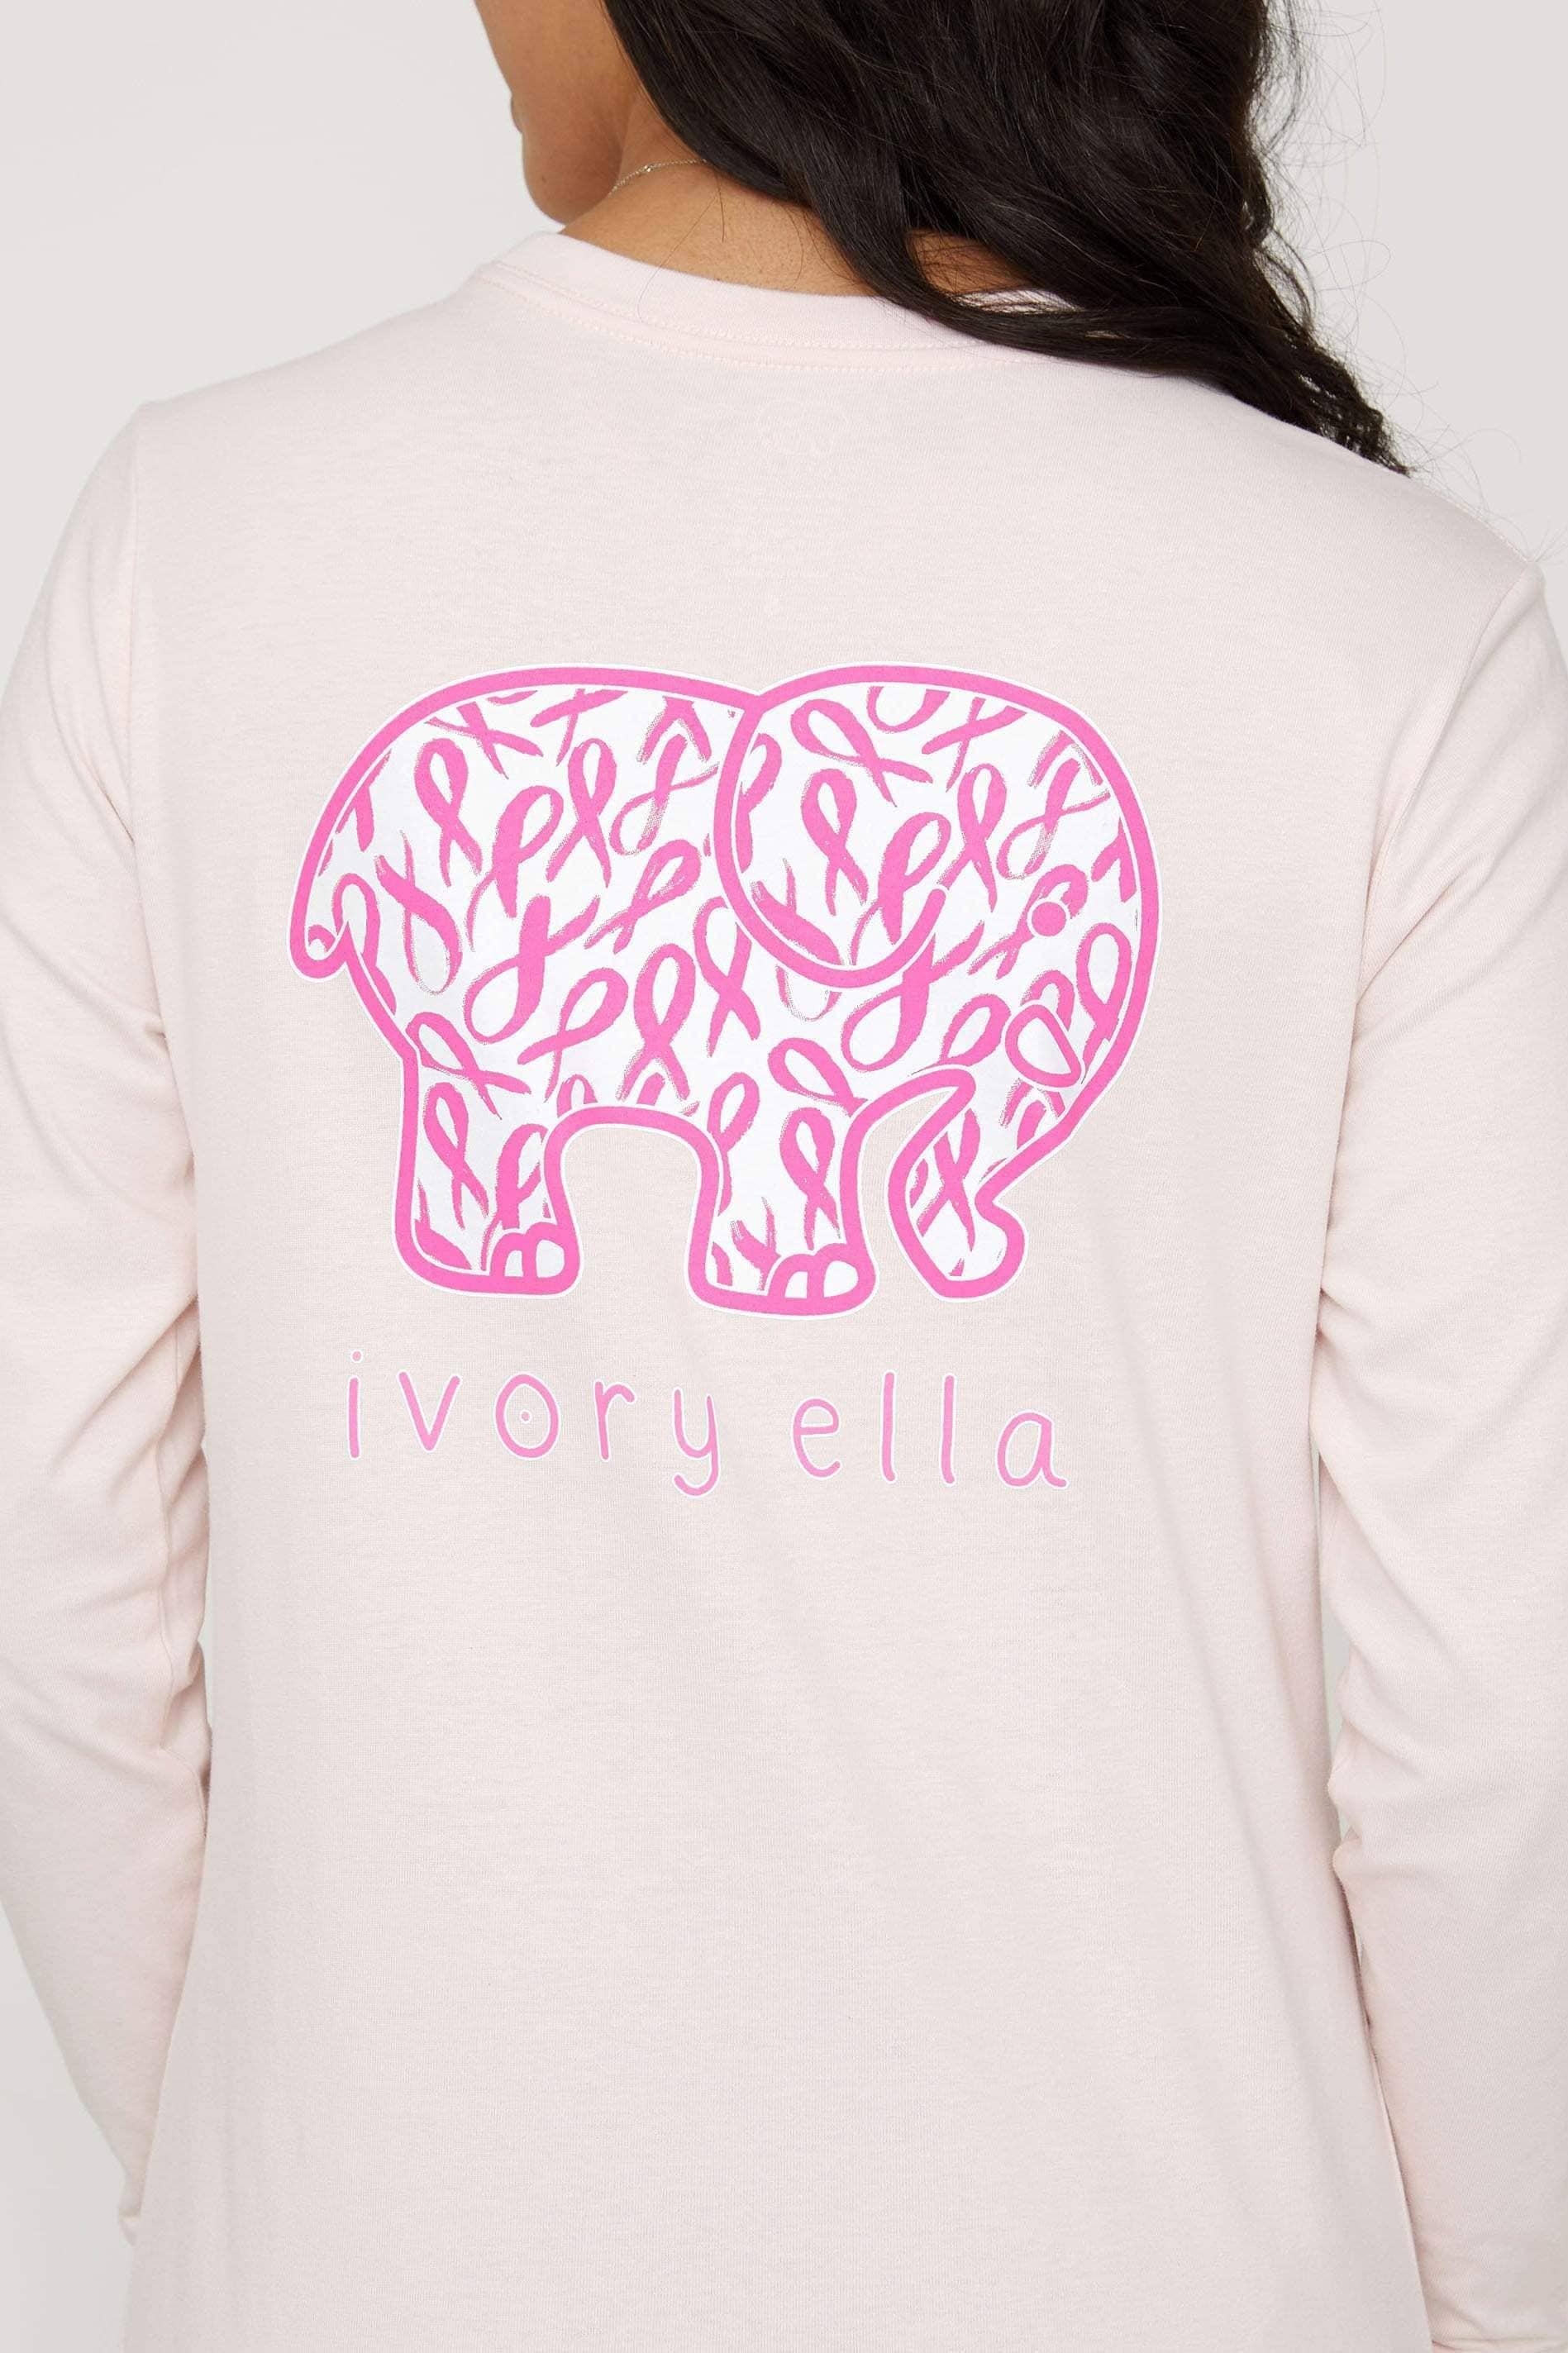 Ivory Ella Women's Long Sleeve Shirts Believe in Pink Ella Tee